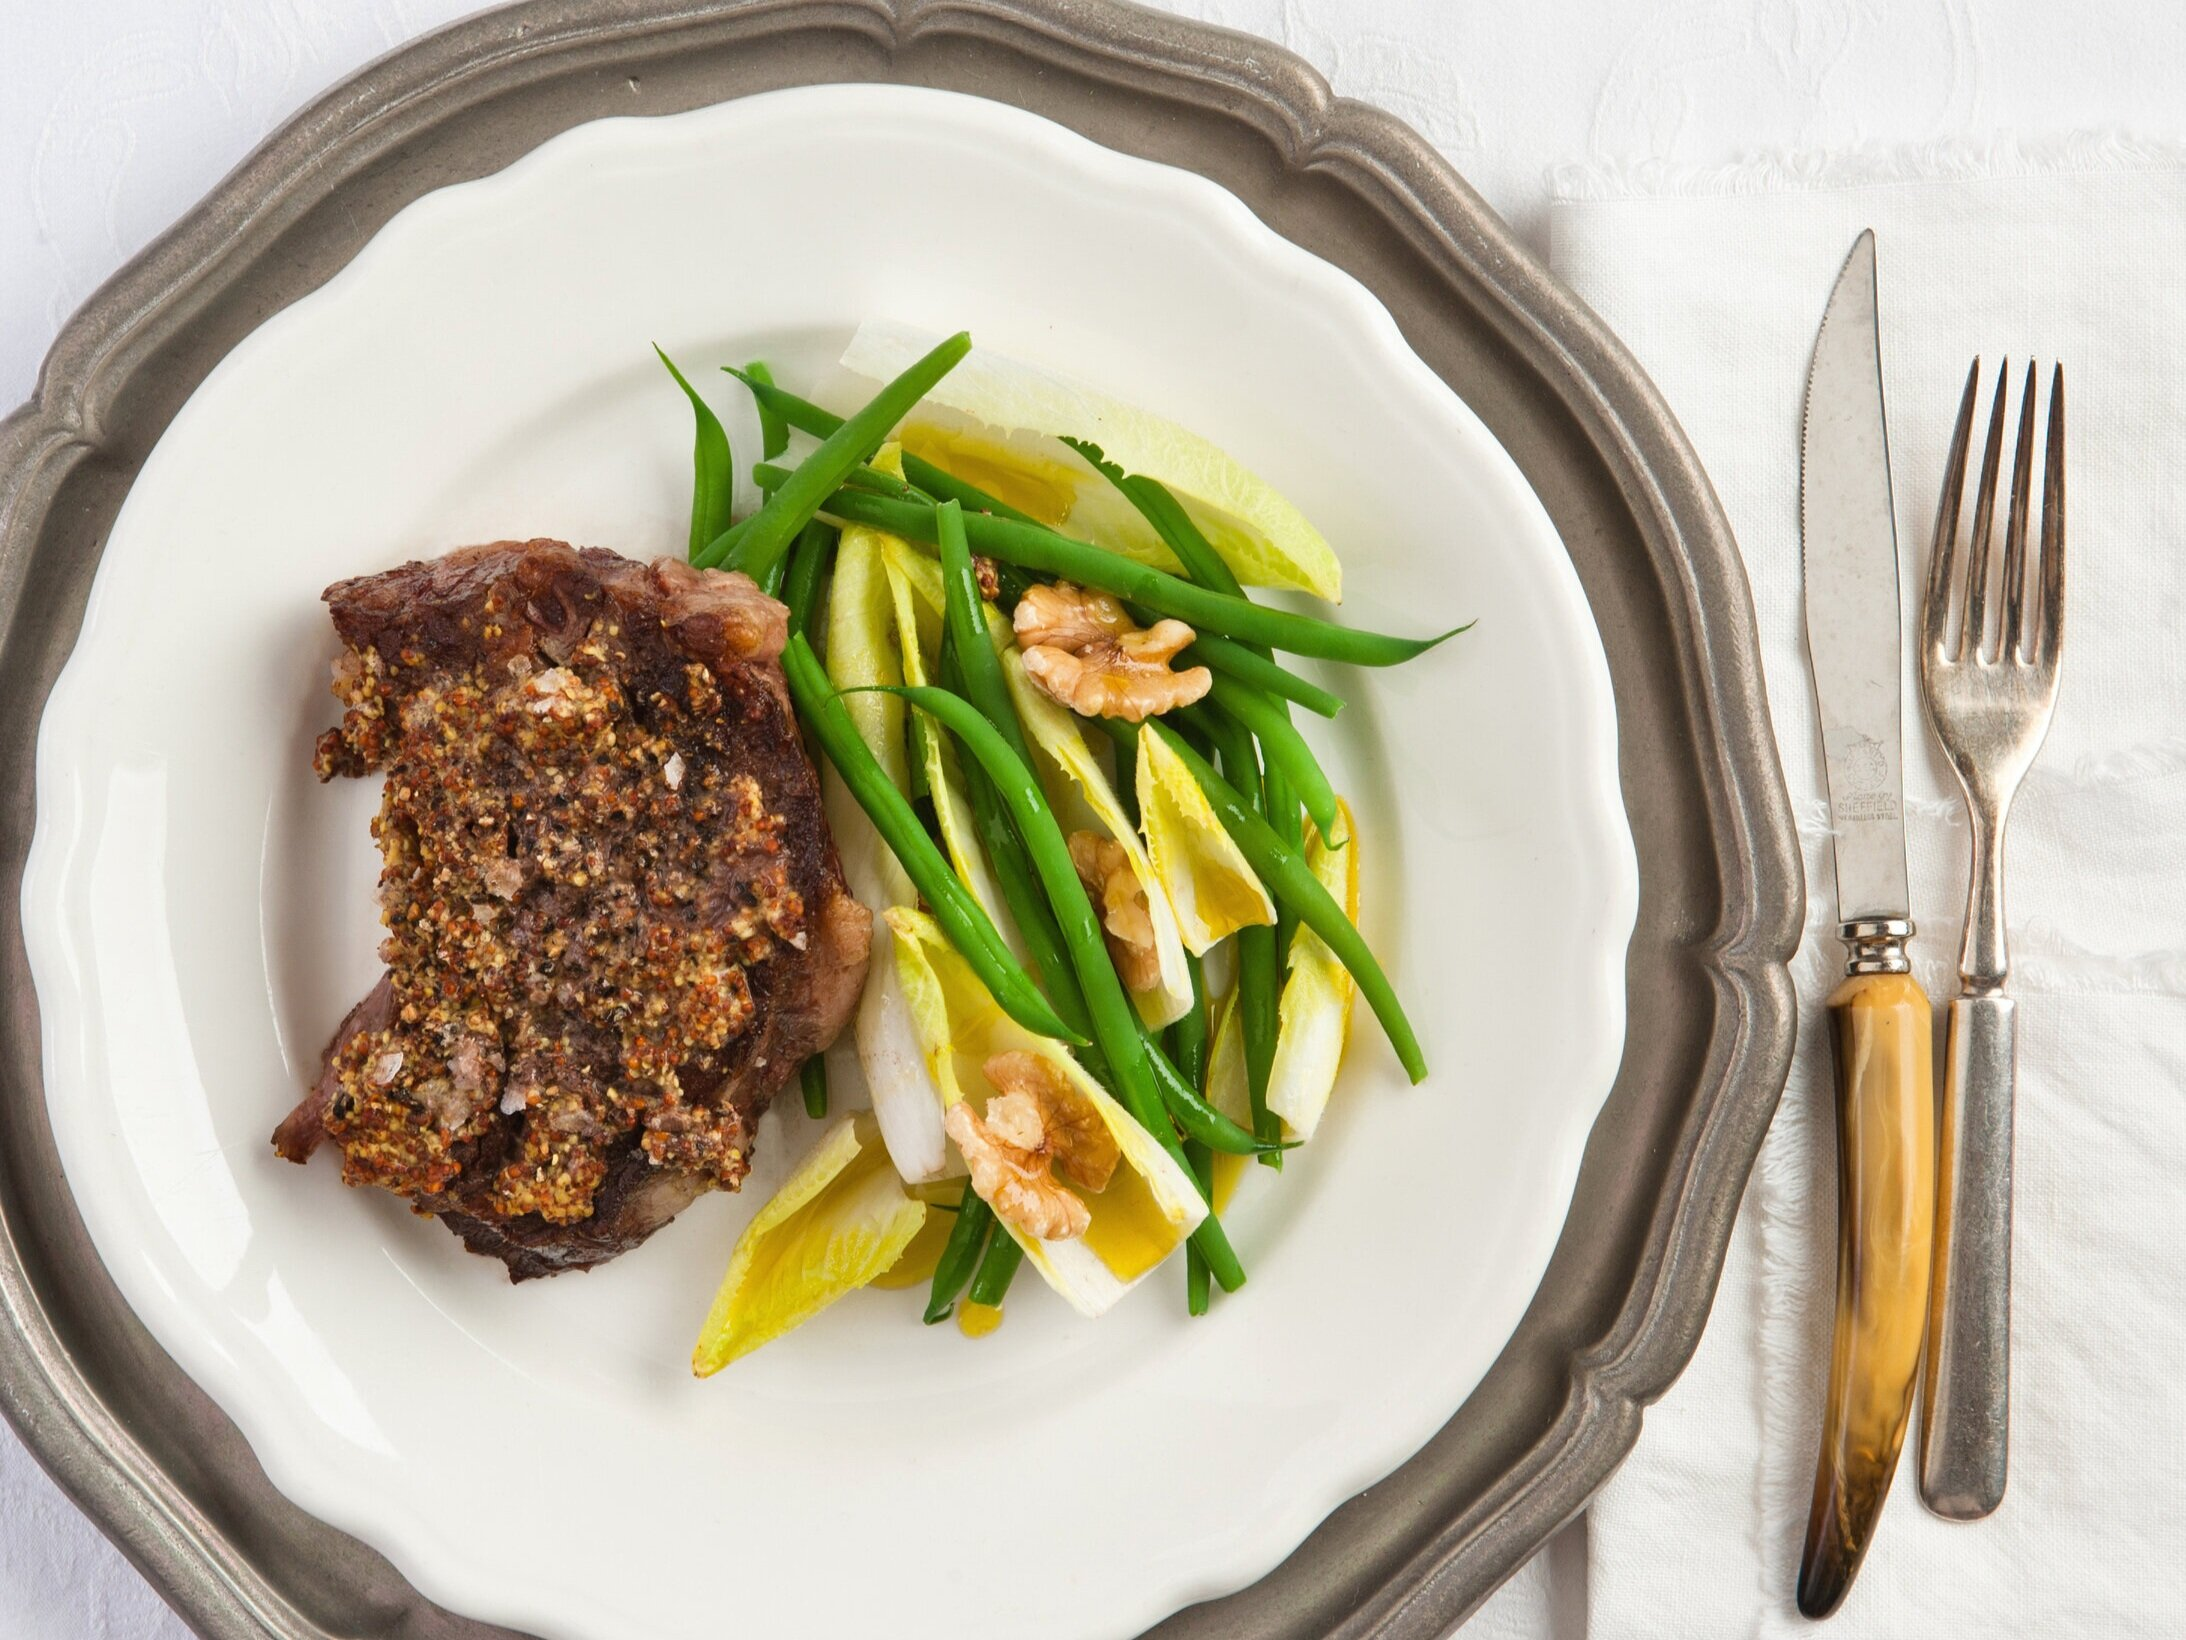 Pan-fried sirloin steak with green beans, endive and walnuts.jpg